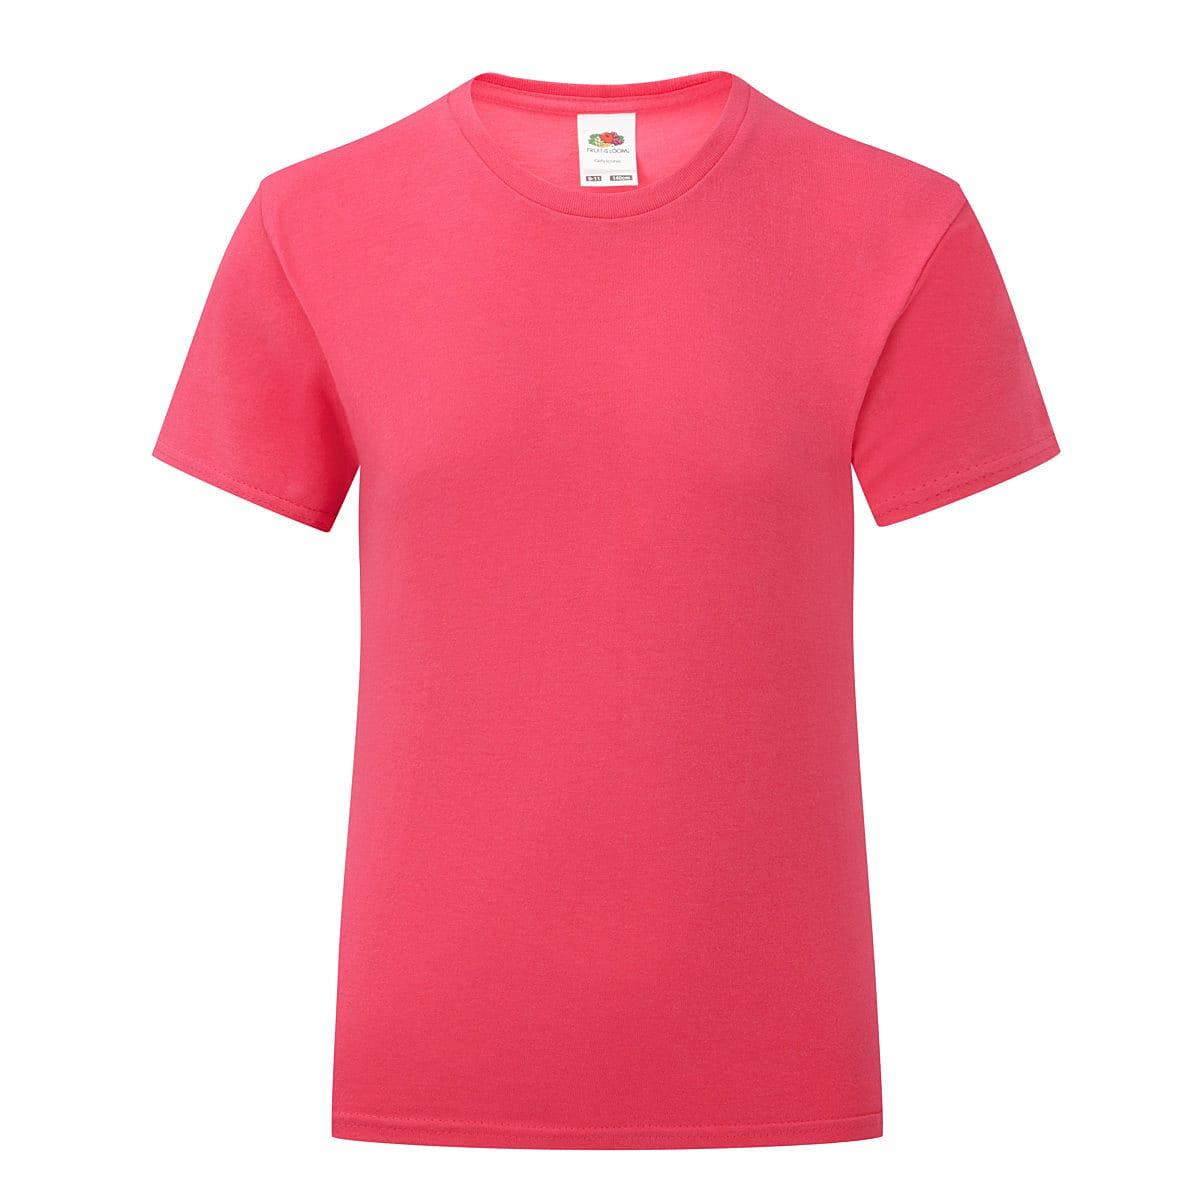 Fruit Of The Loom Girls Iconic T-Shirt in Fuchsia (Product Code: 61025)